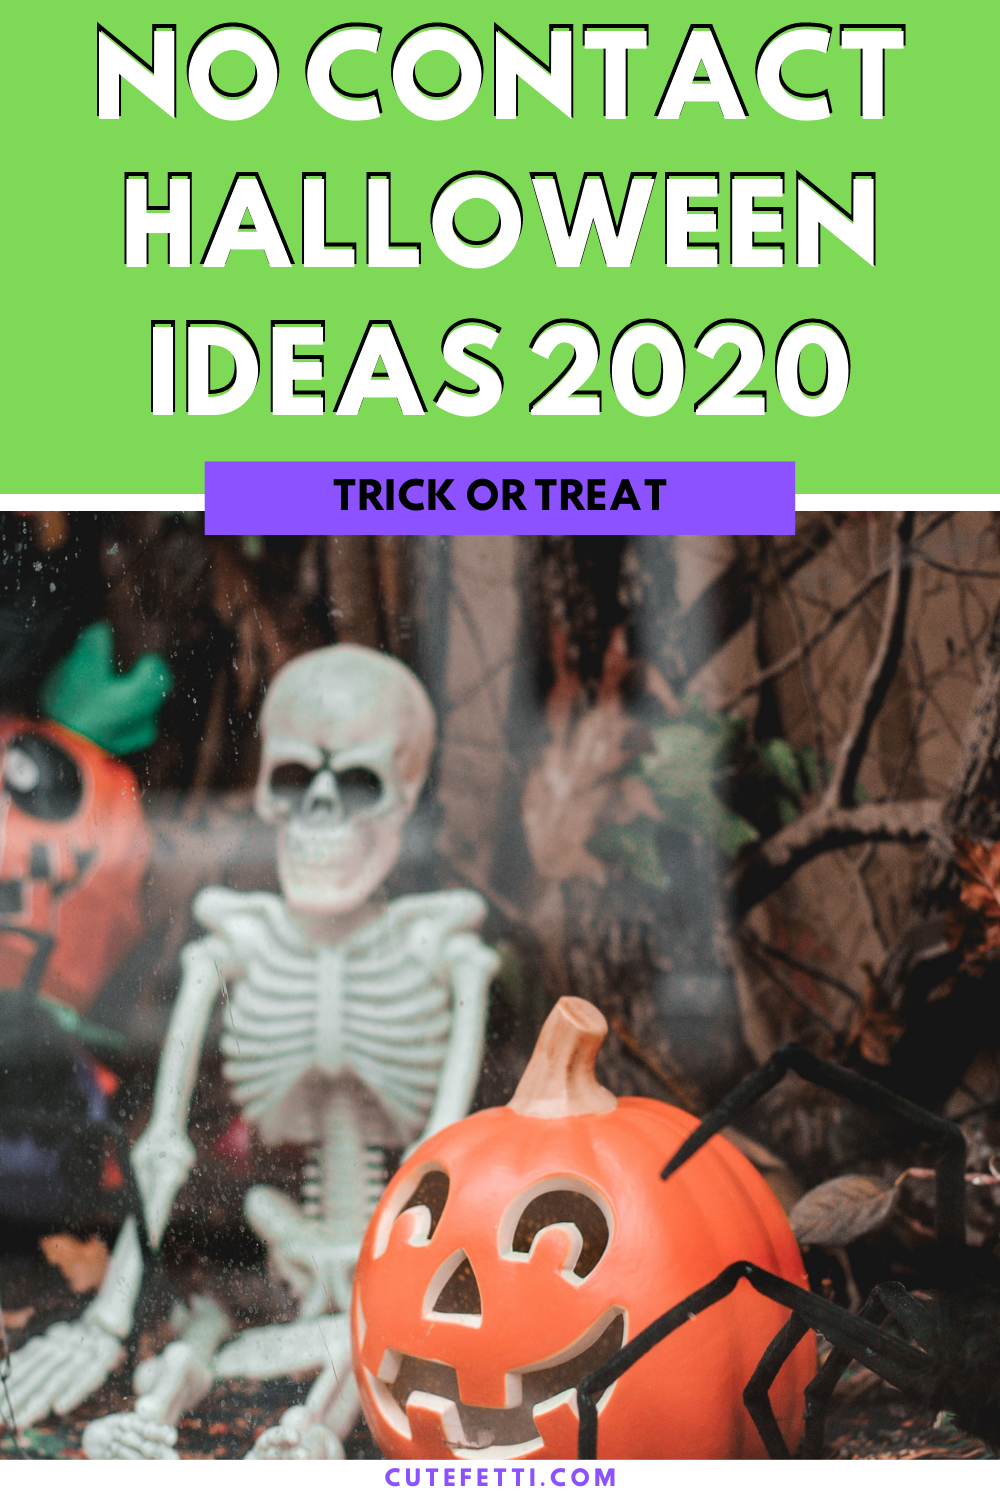 These socially distanced party ideas will let you celebrate Halloween. These trick or treat alternatives are the perfect solution this year.